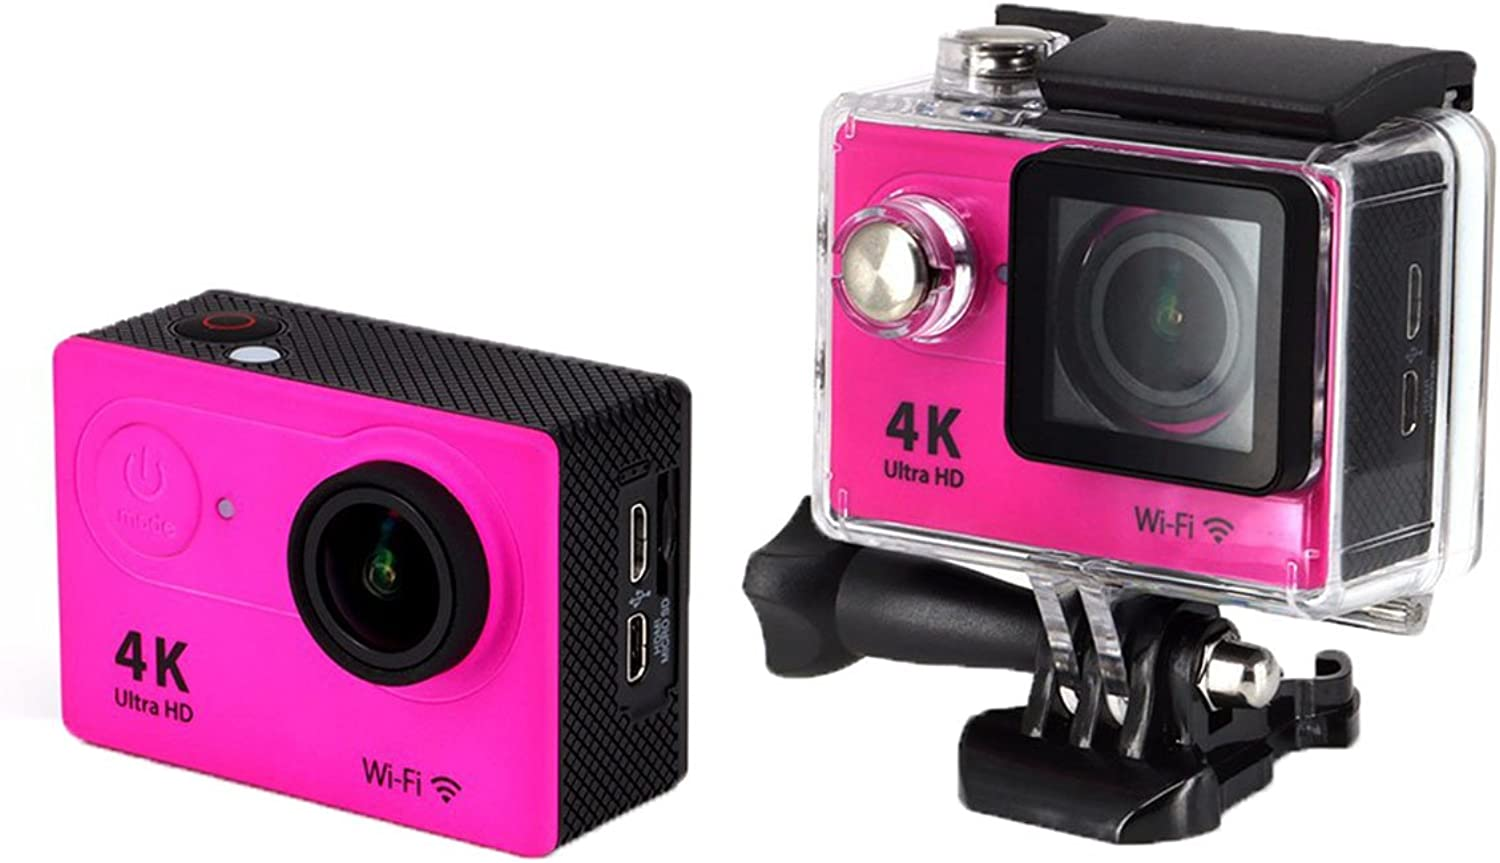 WiFi 2.0''12MP 4K 1080P Outdoor Sports DV Action Camera Video Camcorder 2.4G Remote Control 170°Angle Len Shockproof Waterproof,Rosy